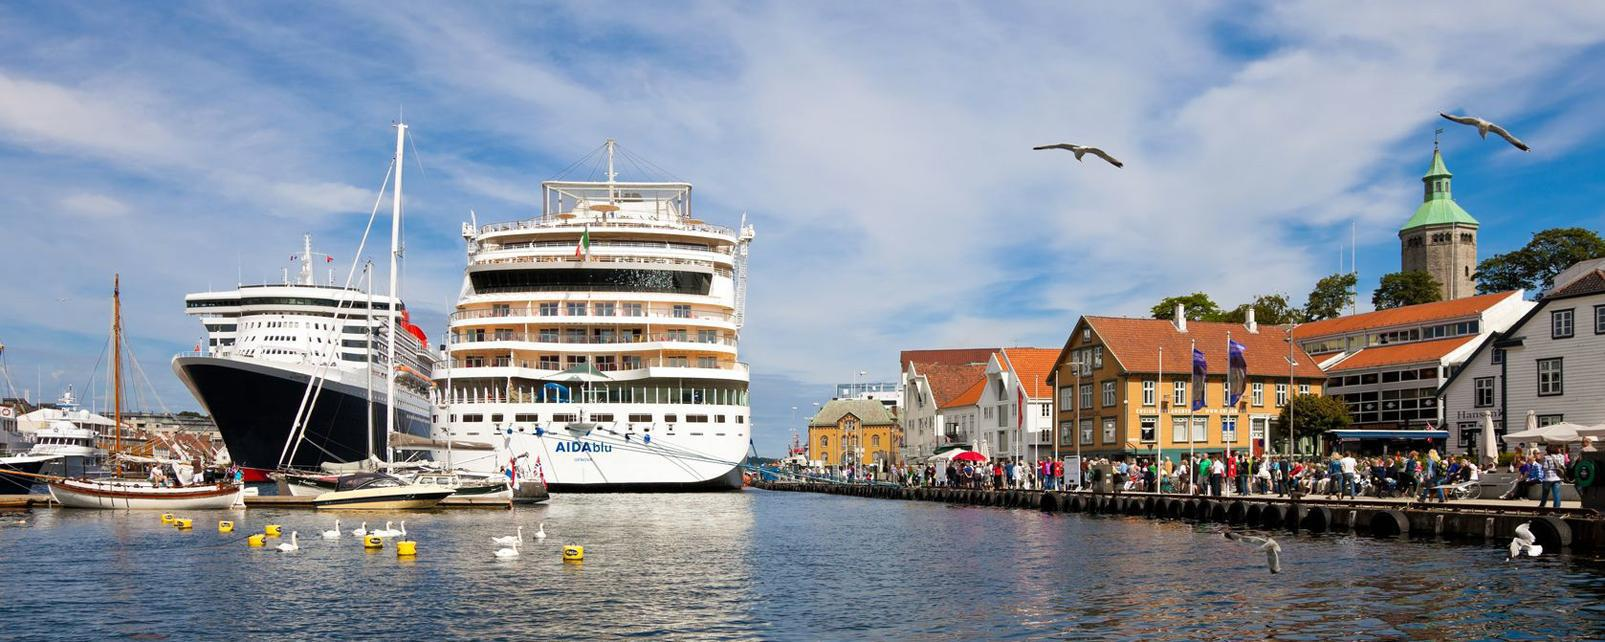 Private Cruise (Stavanger) - 2019 All You Need to Know ...